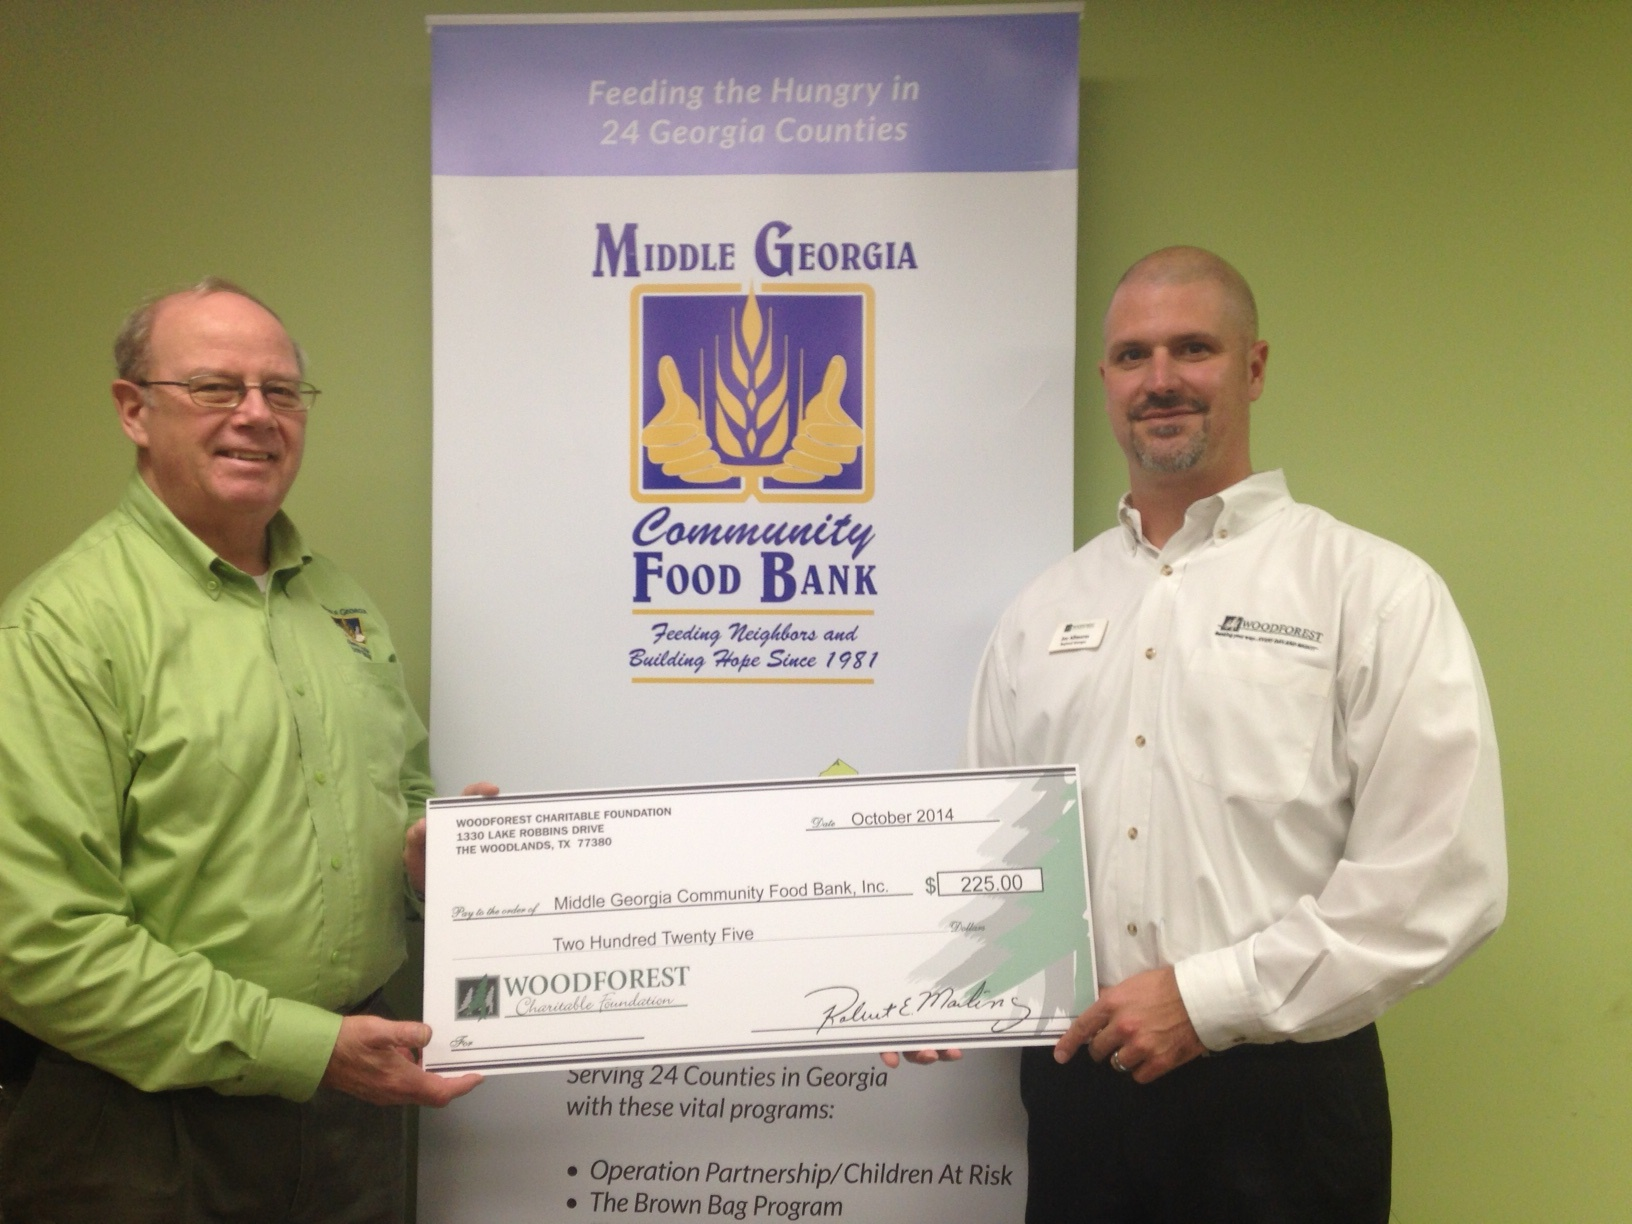 Middle Georgia Community Food Bank, Inc.